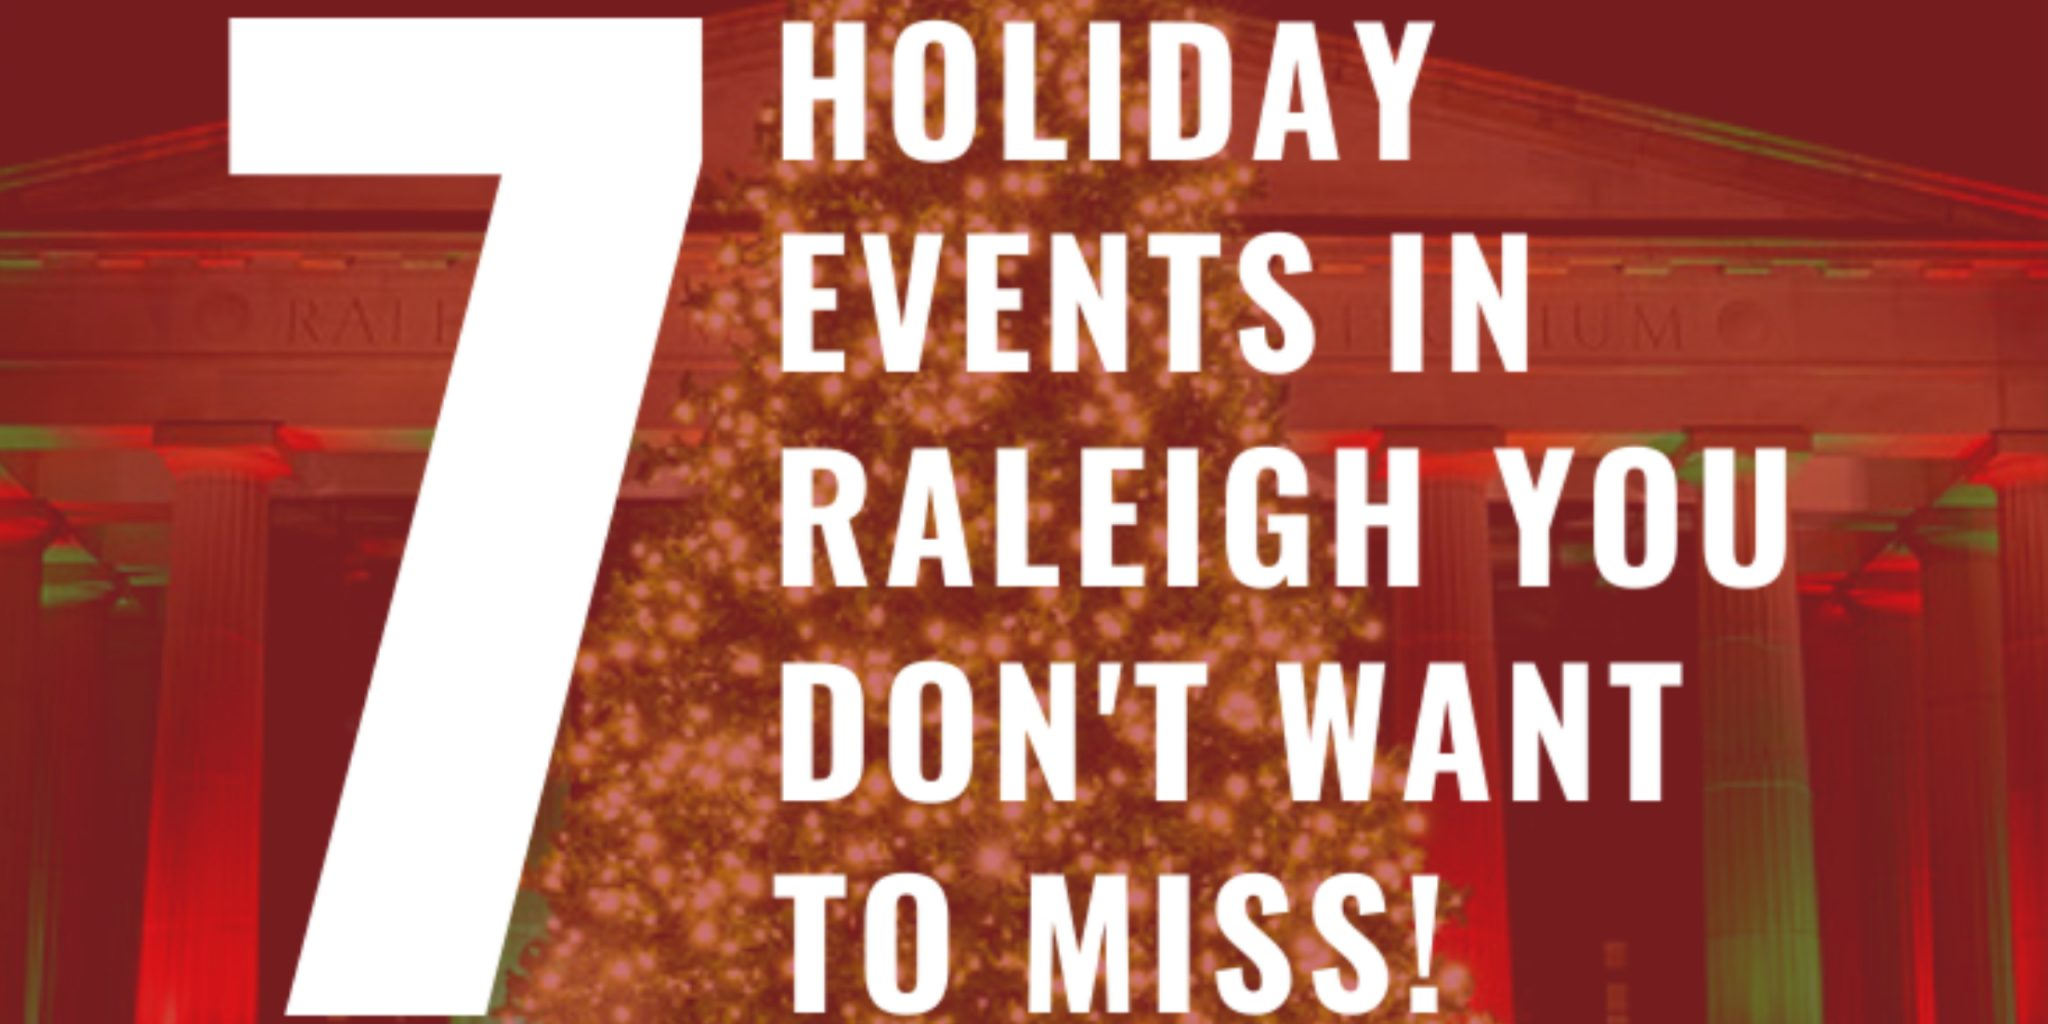 7 holiday events in raleigh you don't want to miss